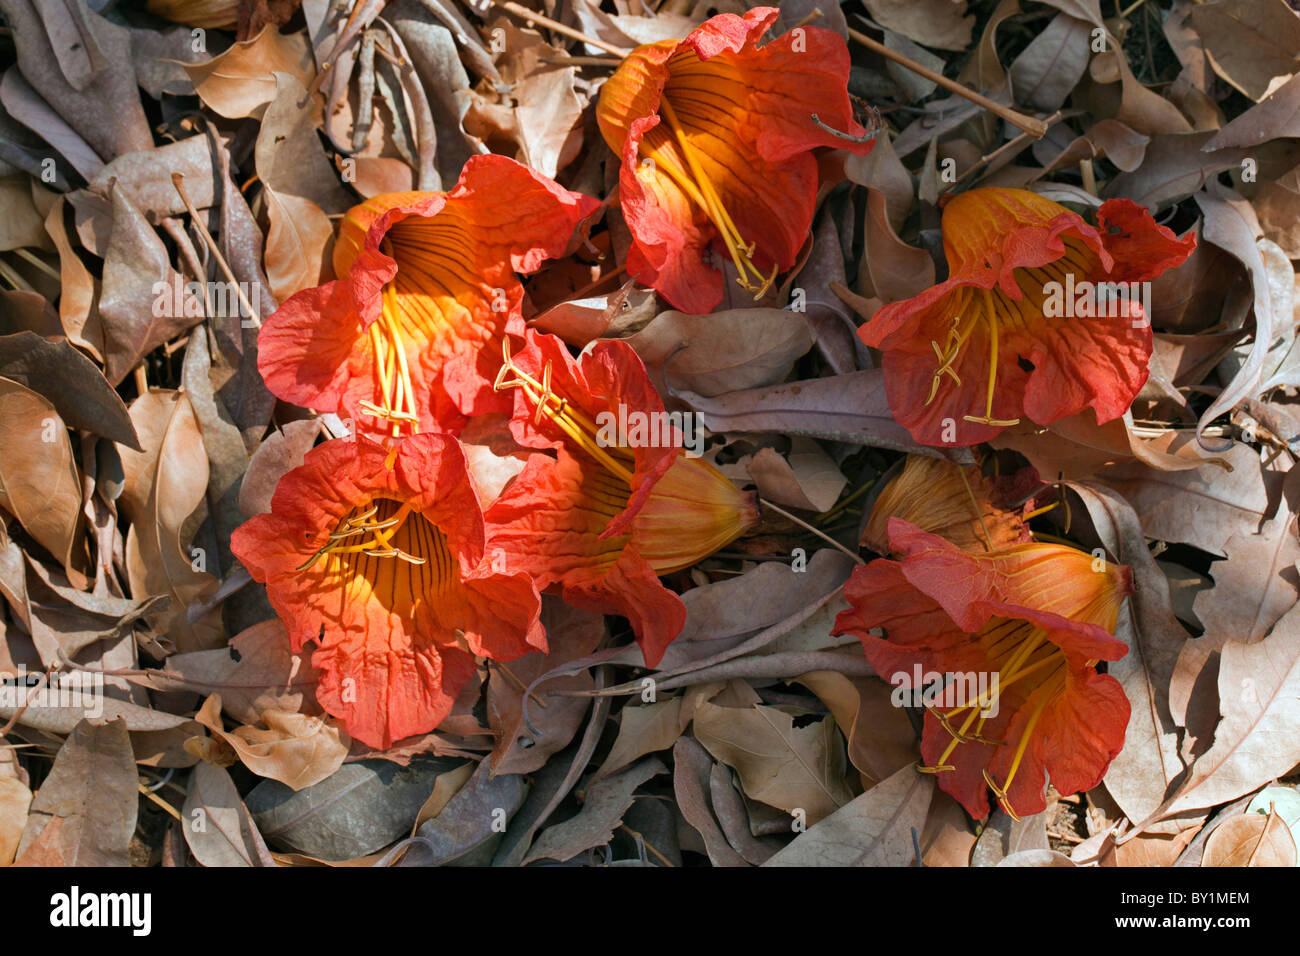 Fallen flame tree flowers, Fernandoa magnifica, and dried leaves in Selous Game Reserve. - Stock Image